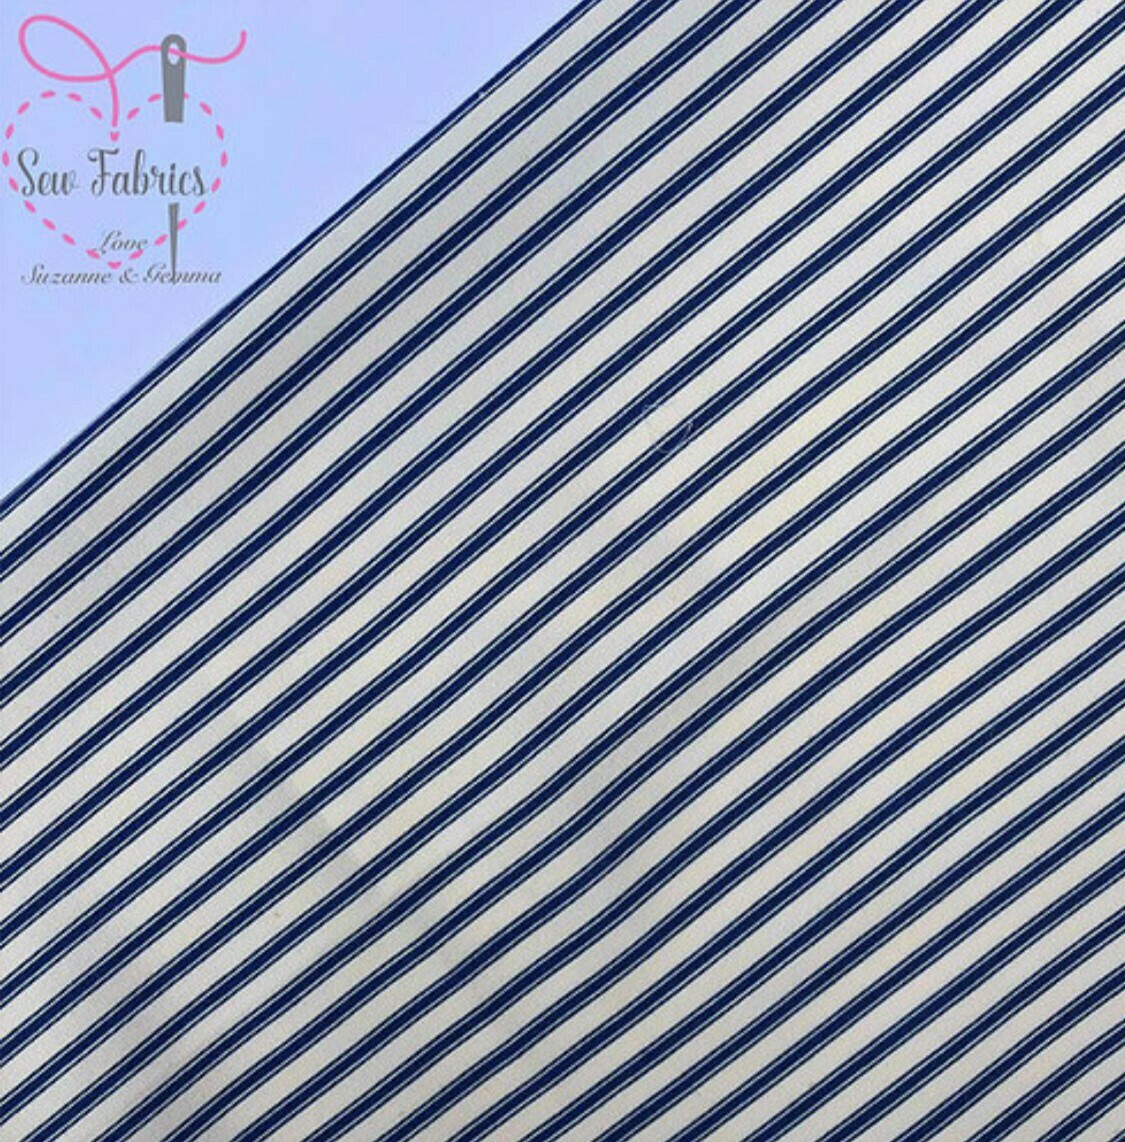 Rose and Hubble Navy Stripe Fabric 100% Cotton, Geometric Material